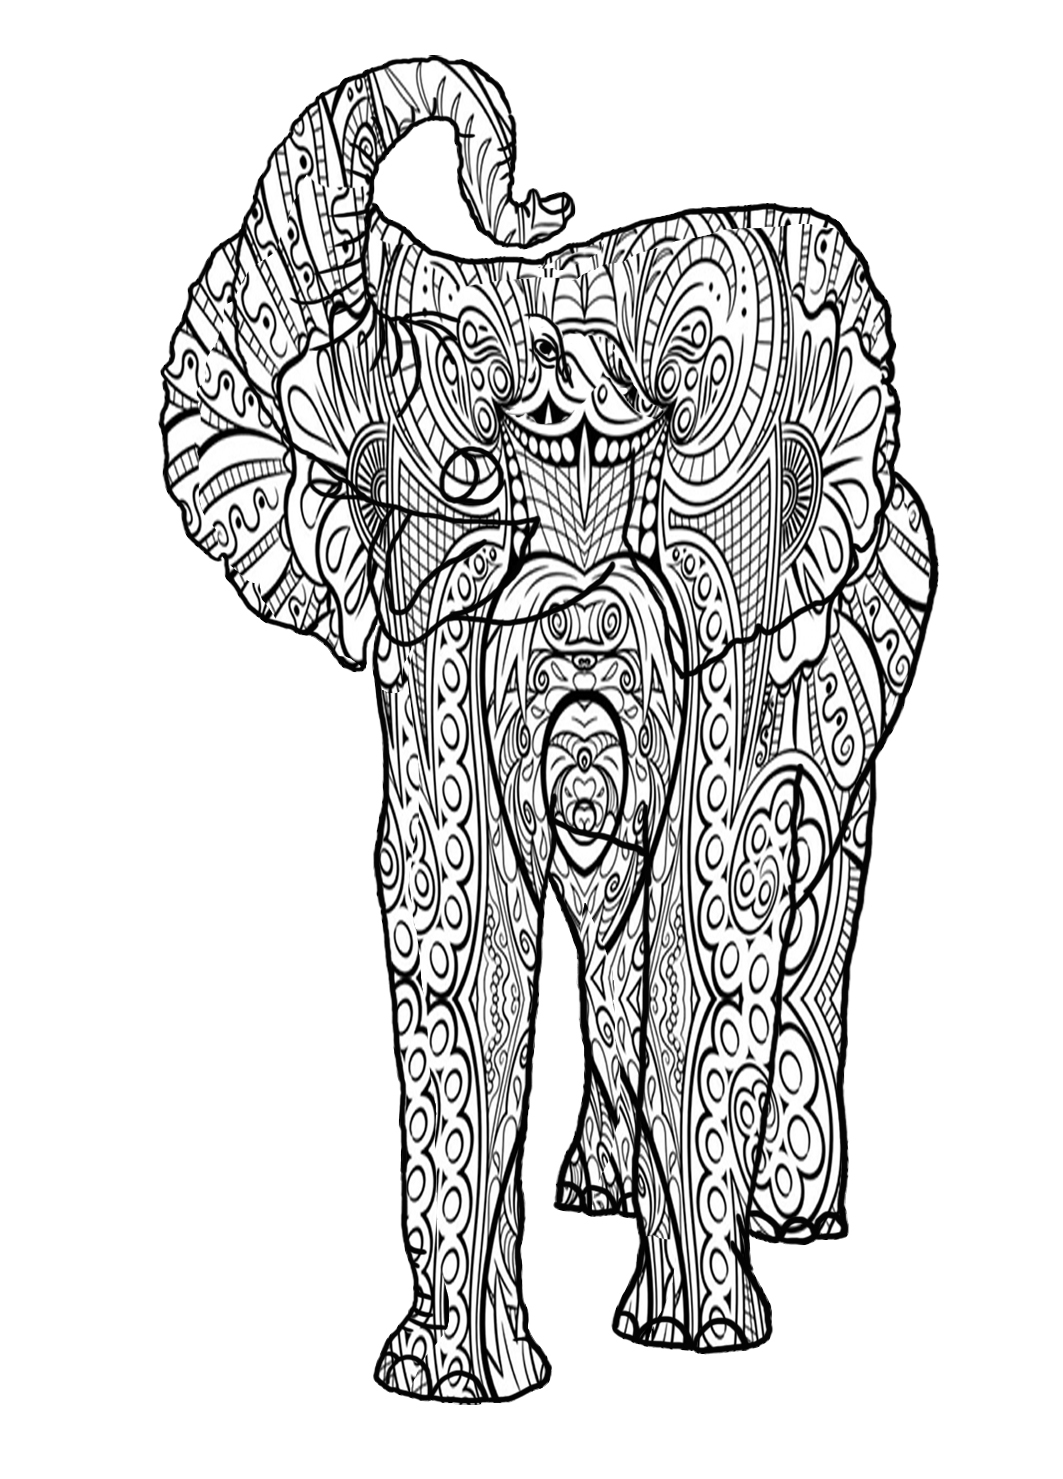 jumbo patterned for coloring